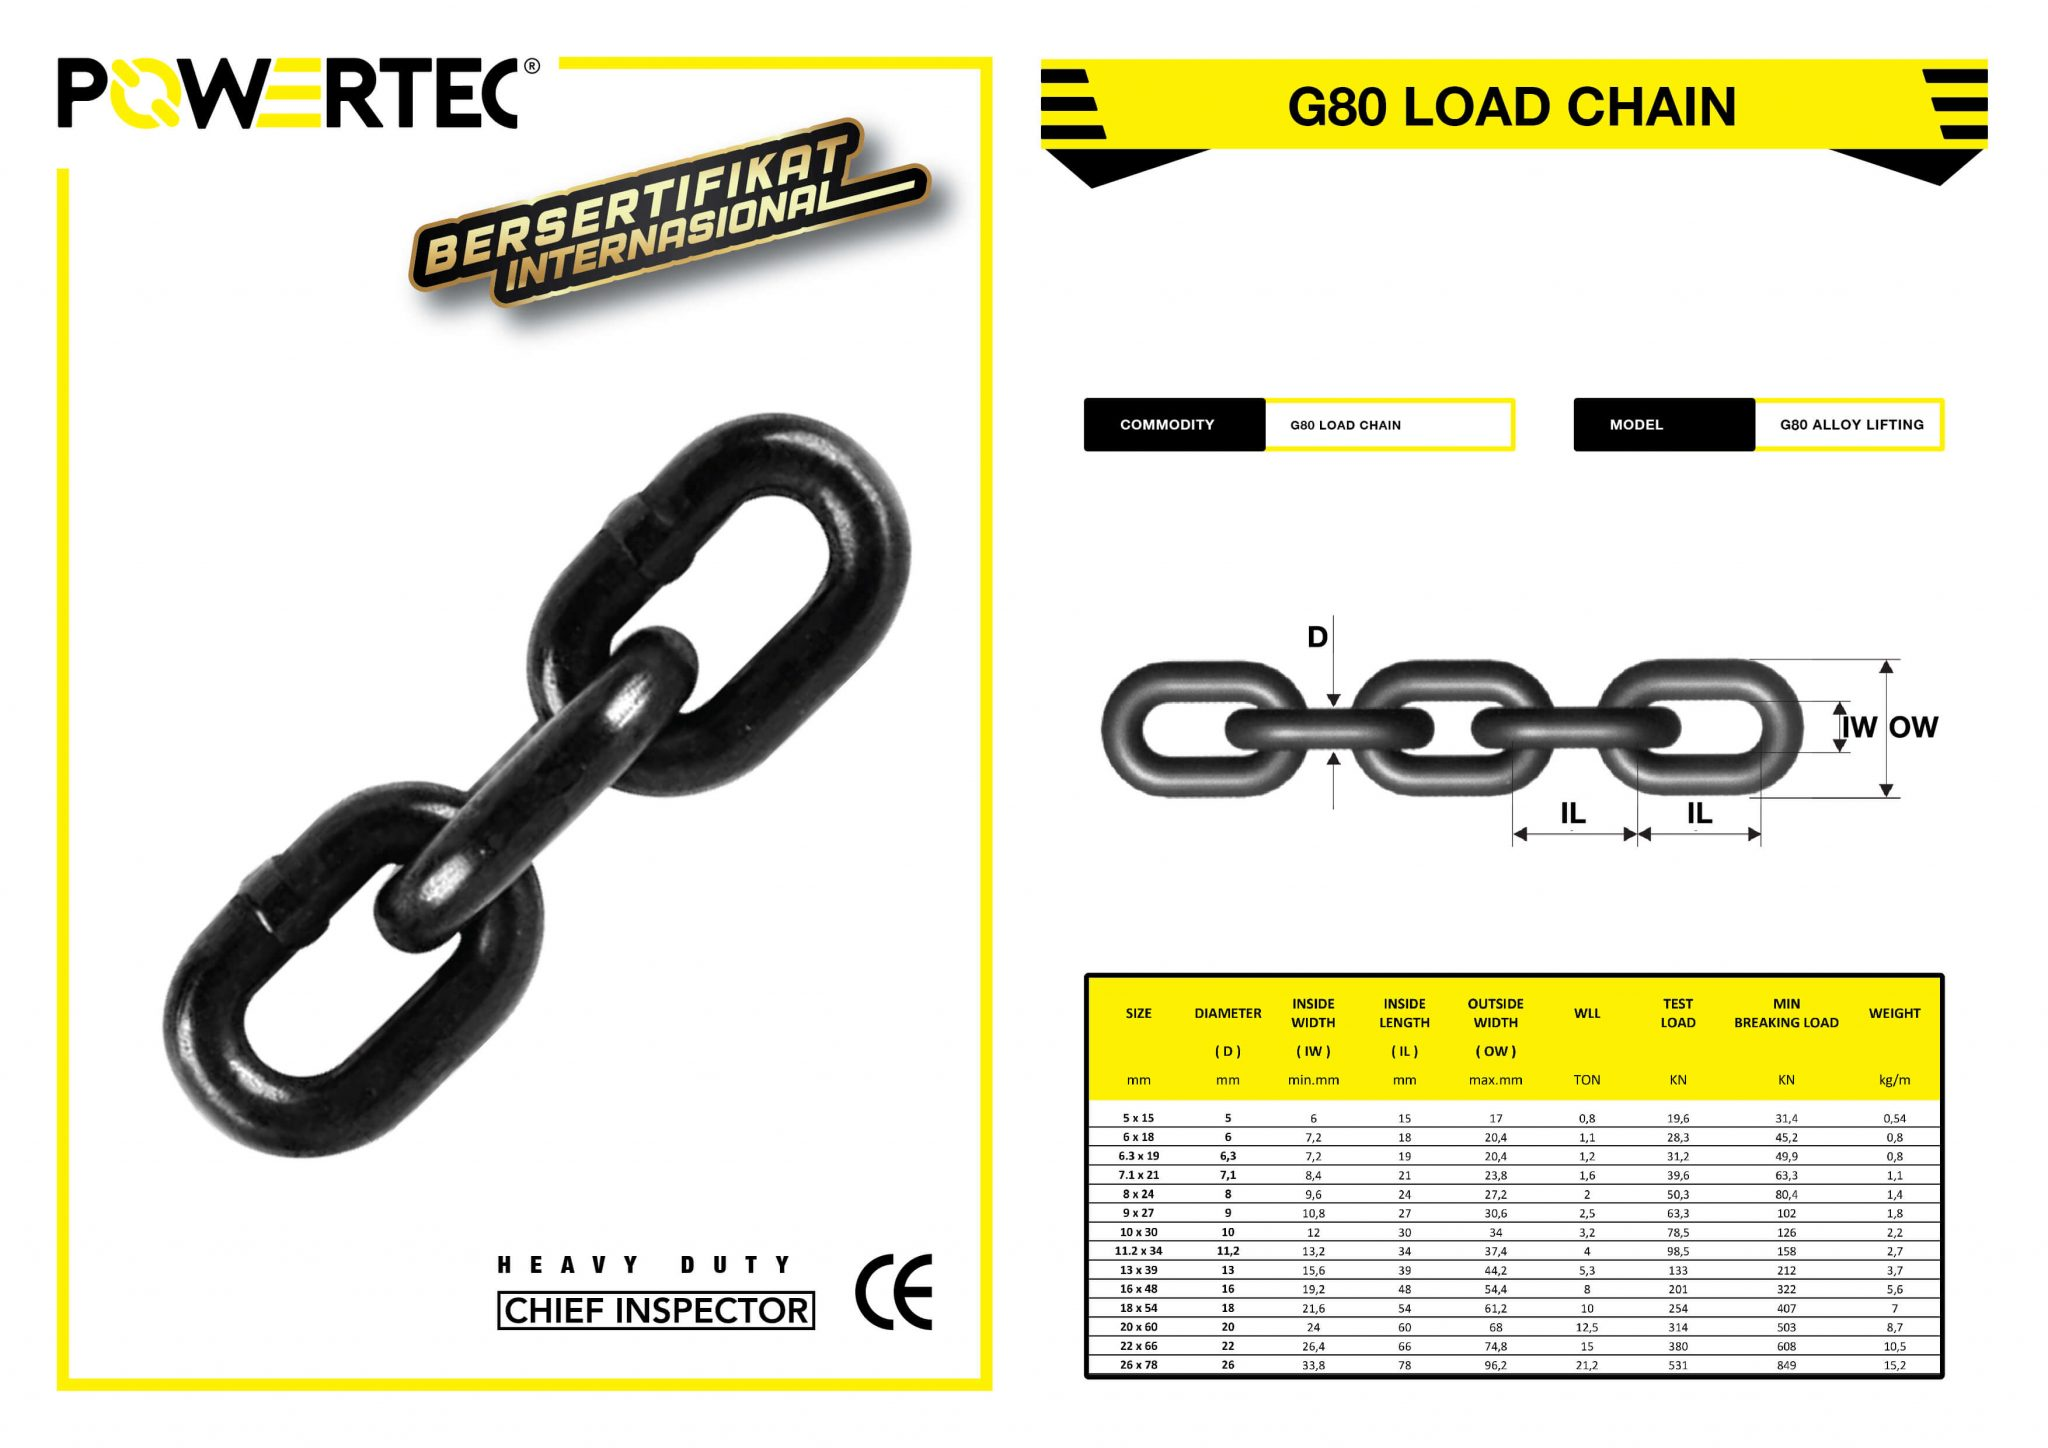 POWERTEC G80 LOAD CHAIN BROCHURE